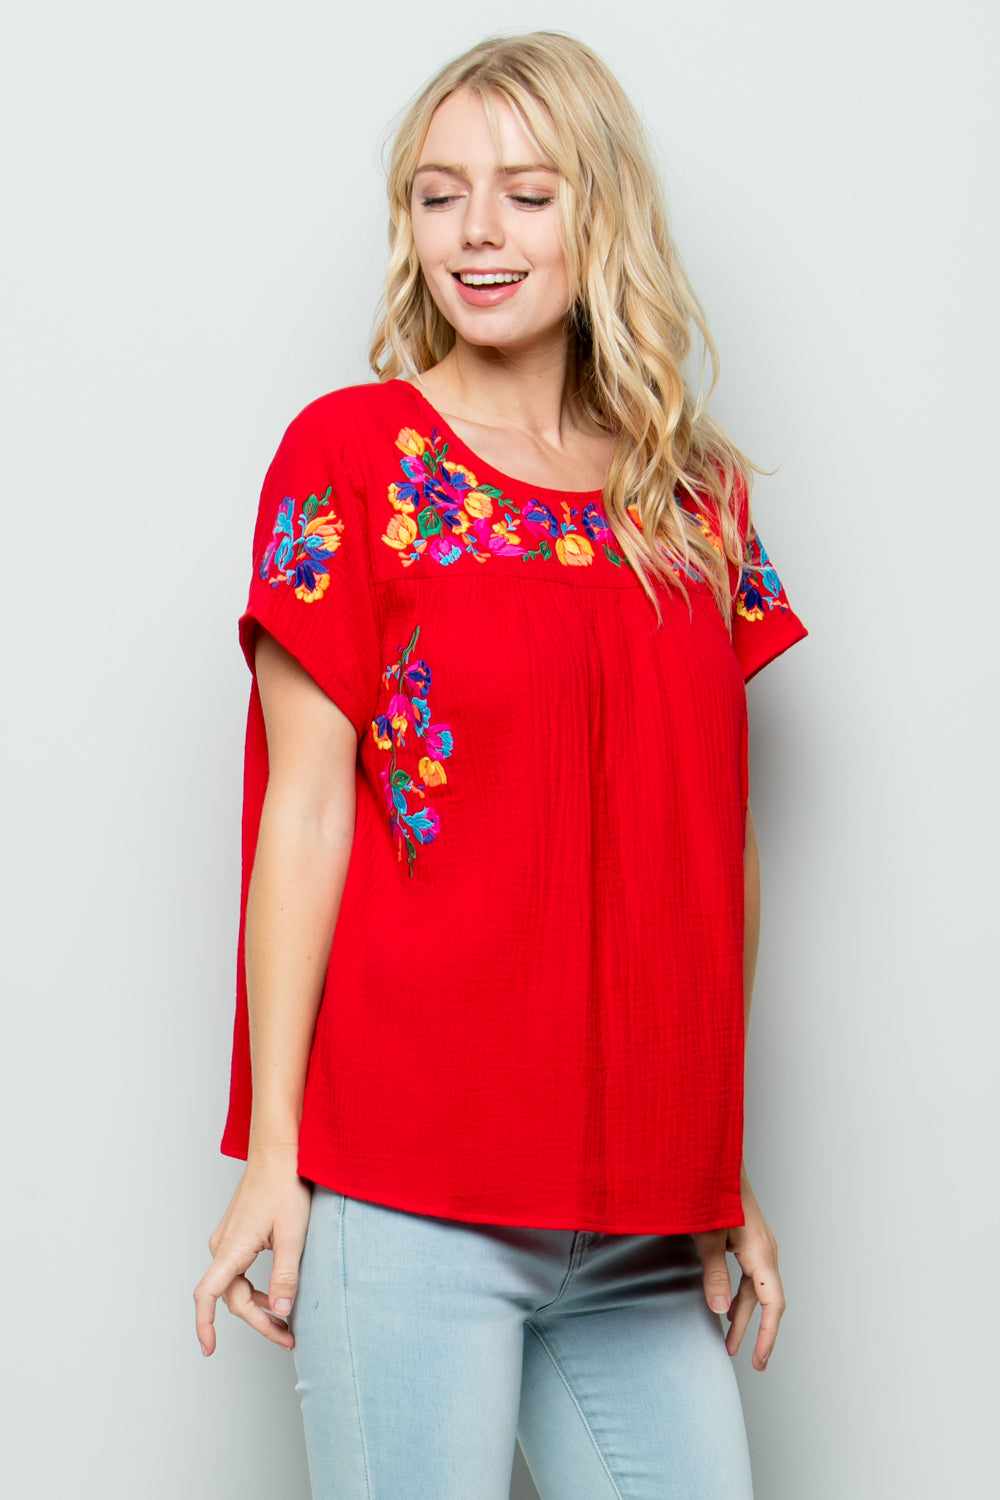 T2185  Floral Embroidery - Burgundy